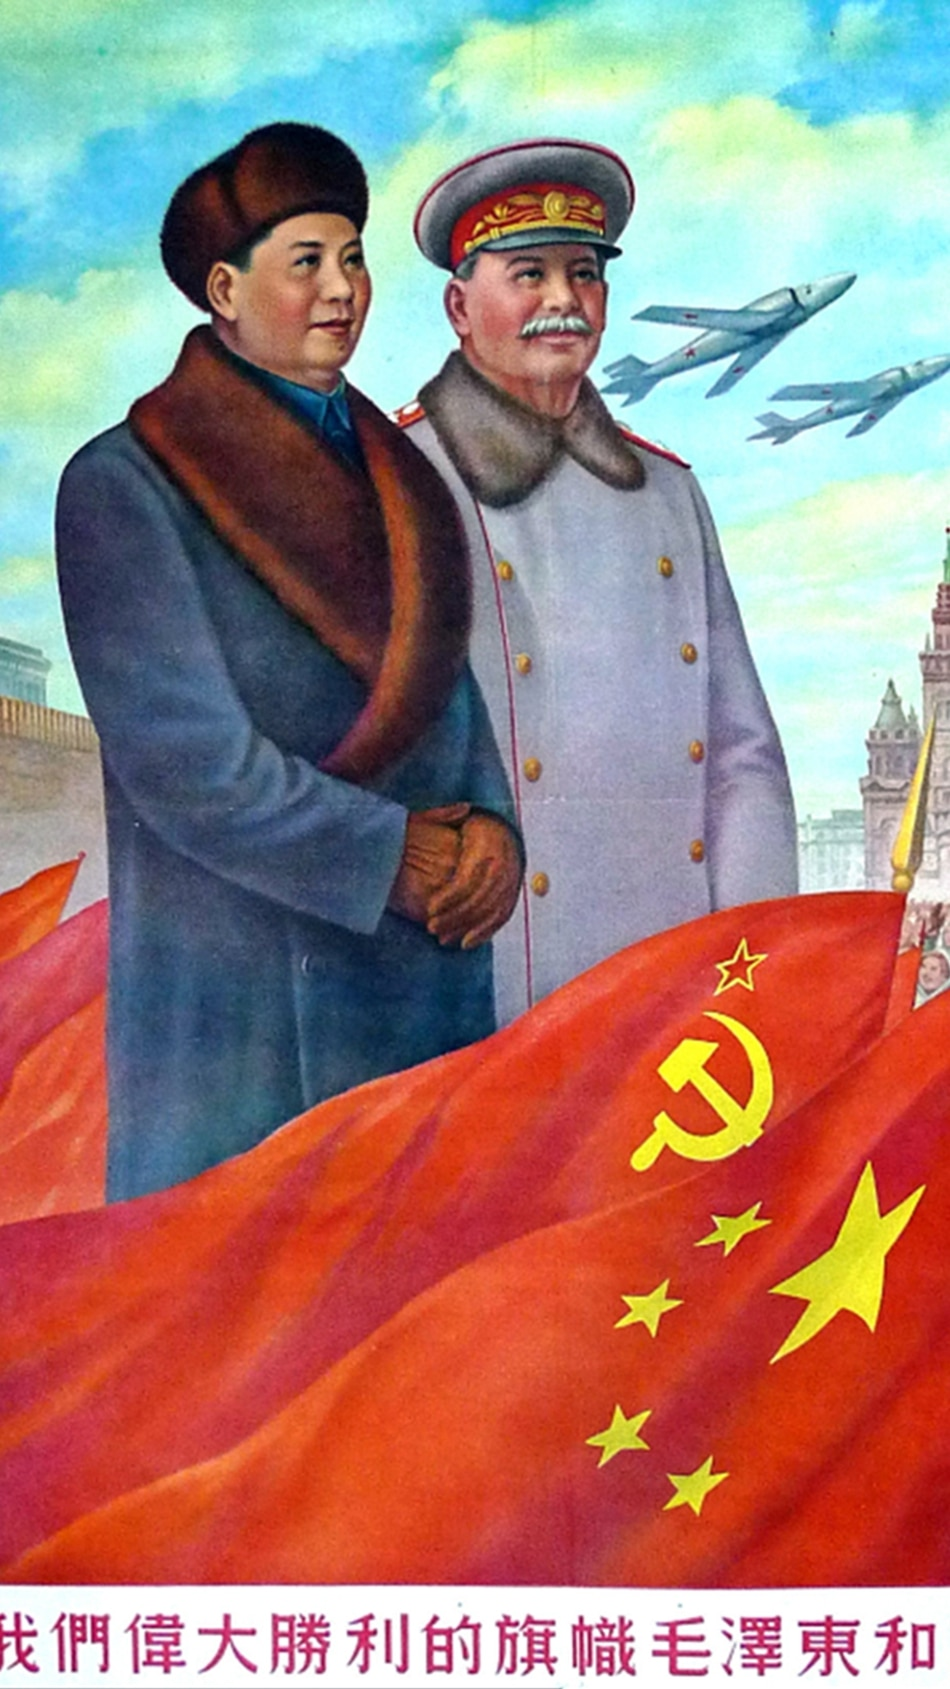 russias collectivization vs chinas cultural revolution essay